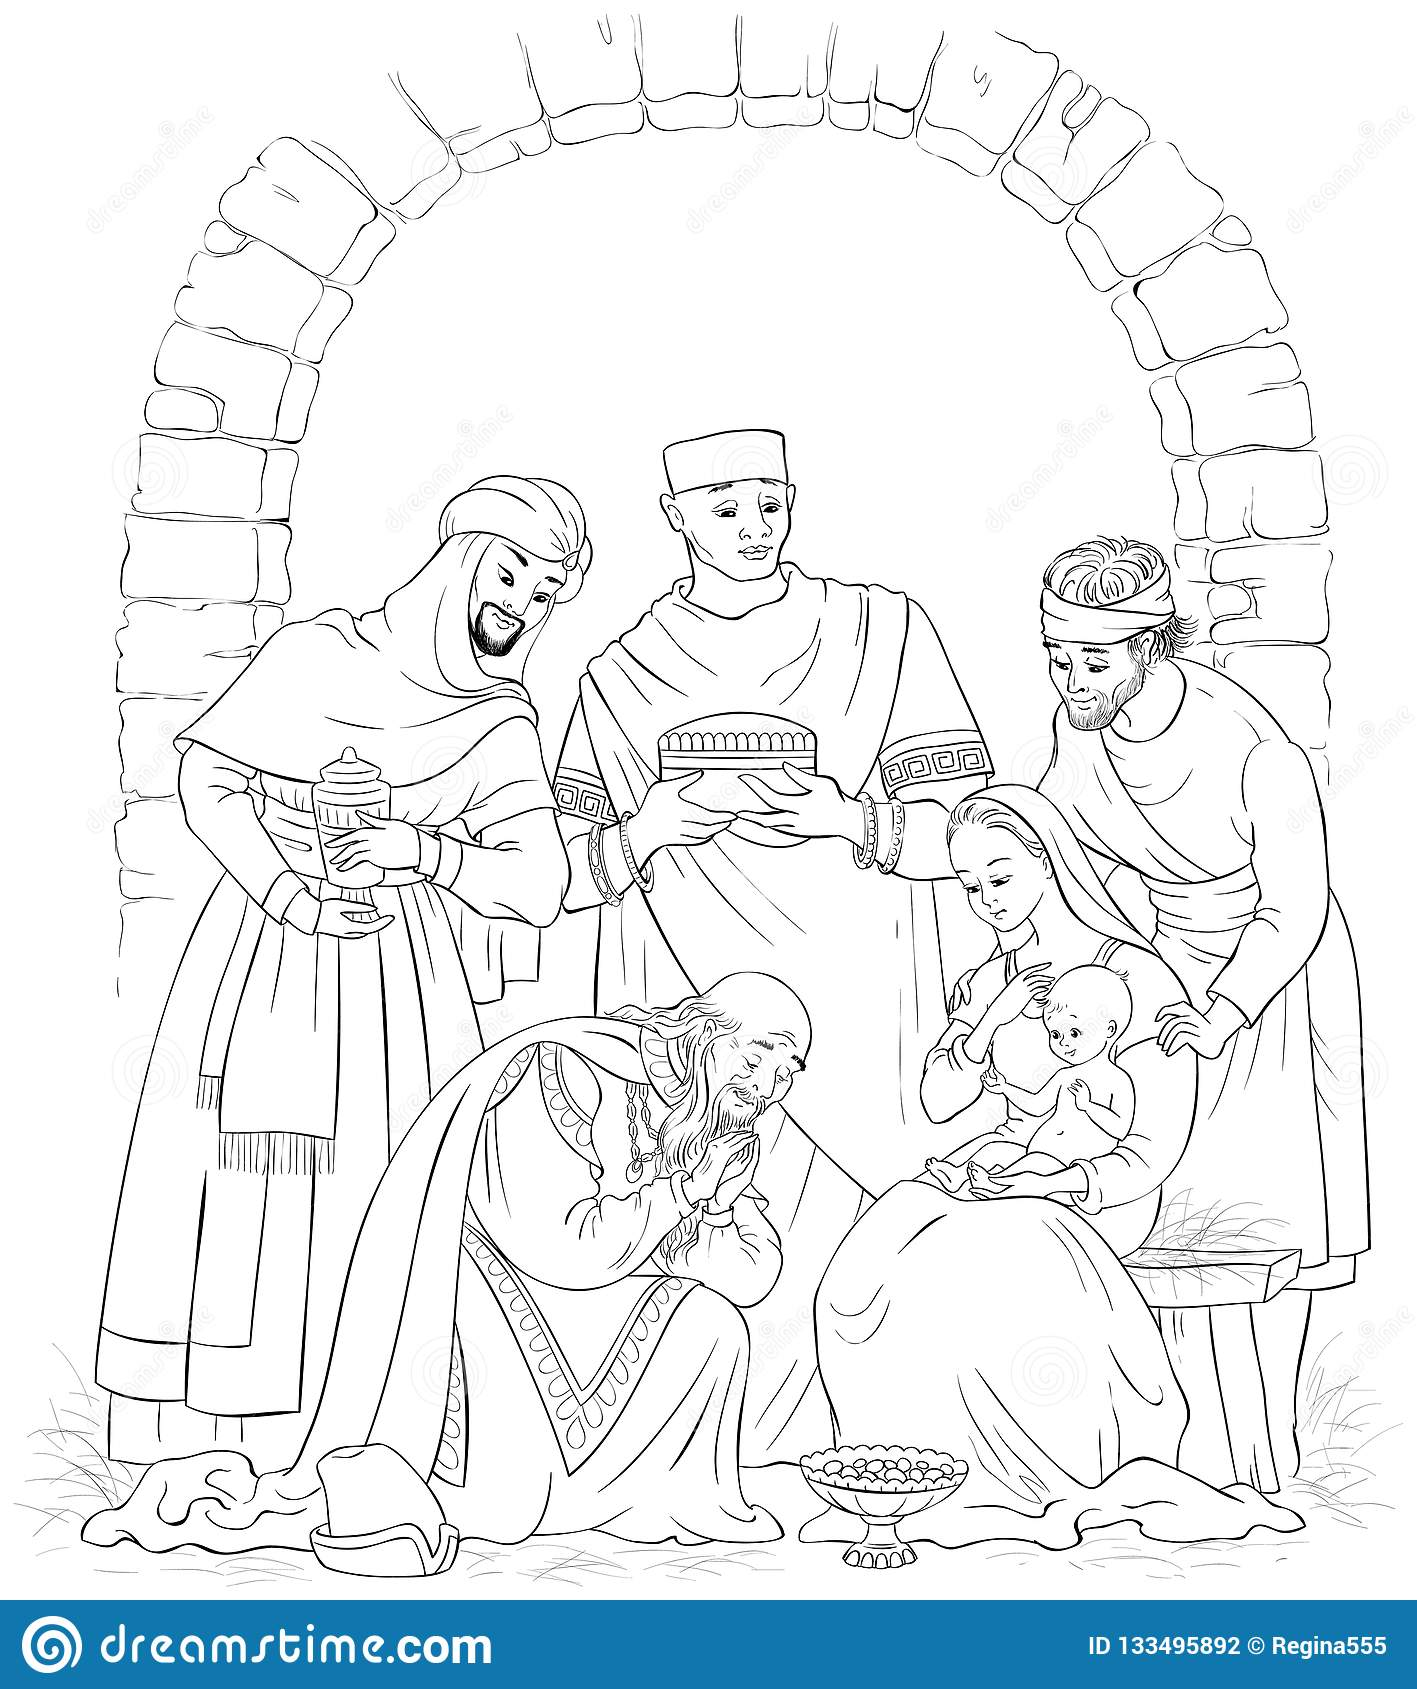 Christian Christmas Nativity Scene Coloring Page Jesus Mary Joseph And The Three Kings Stock Vector Illustration Of Isolated Christ 133495892